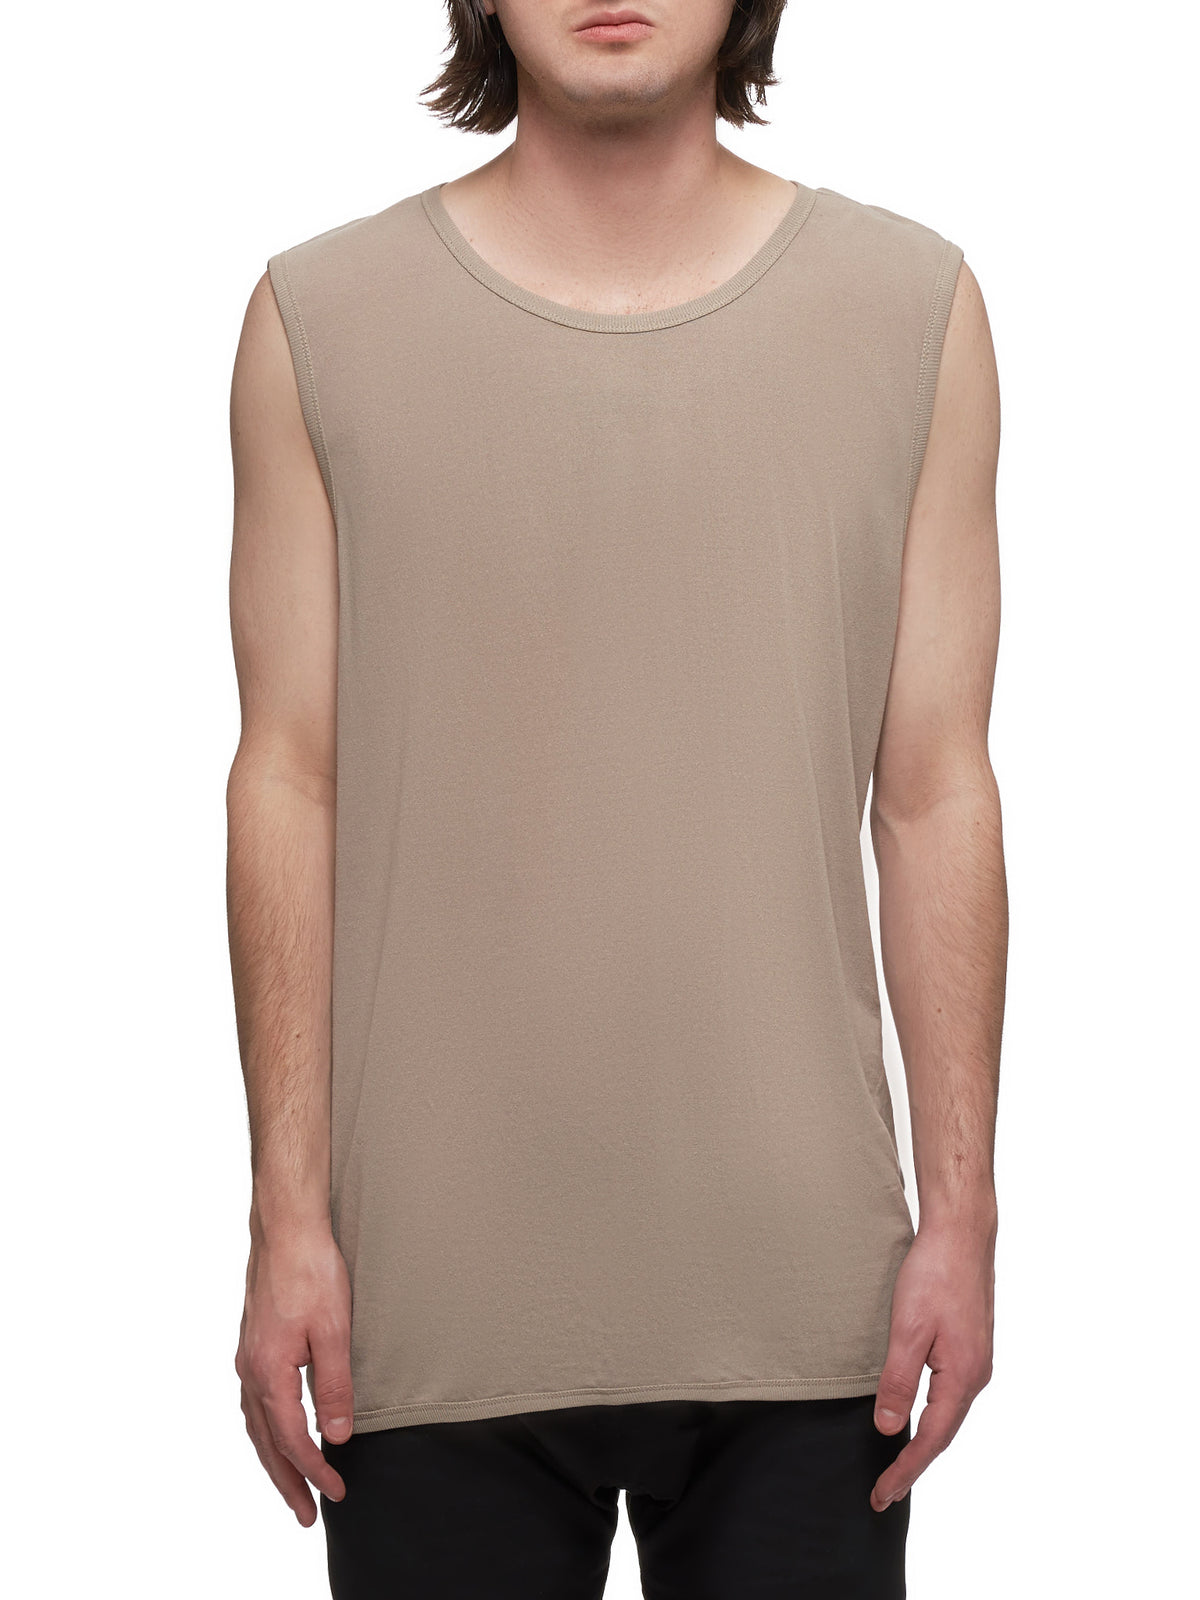 Jersey Tank Top (TANKTOP-13-COTTON-LIGHT-GRAY)